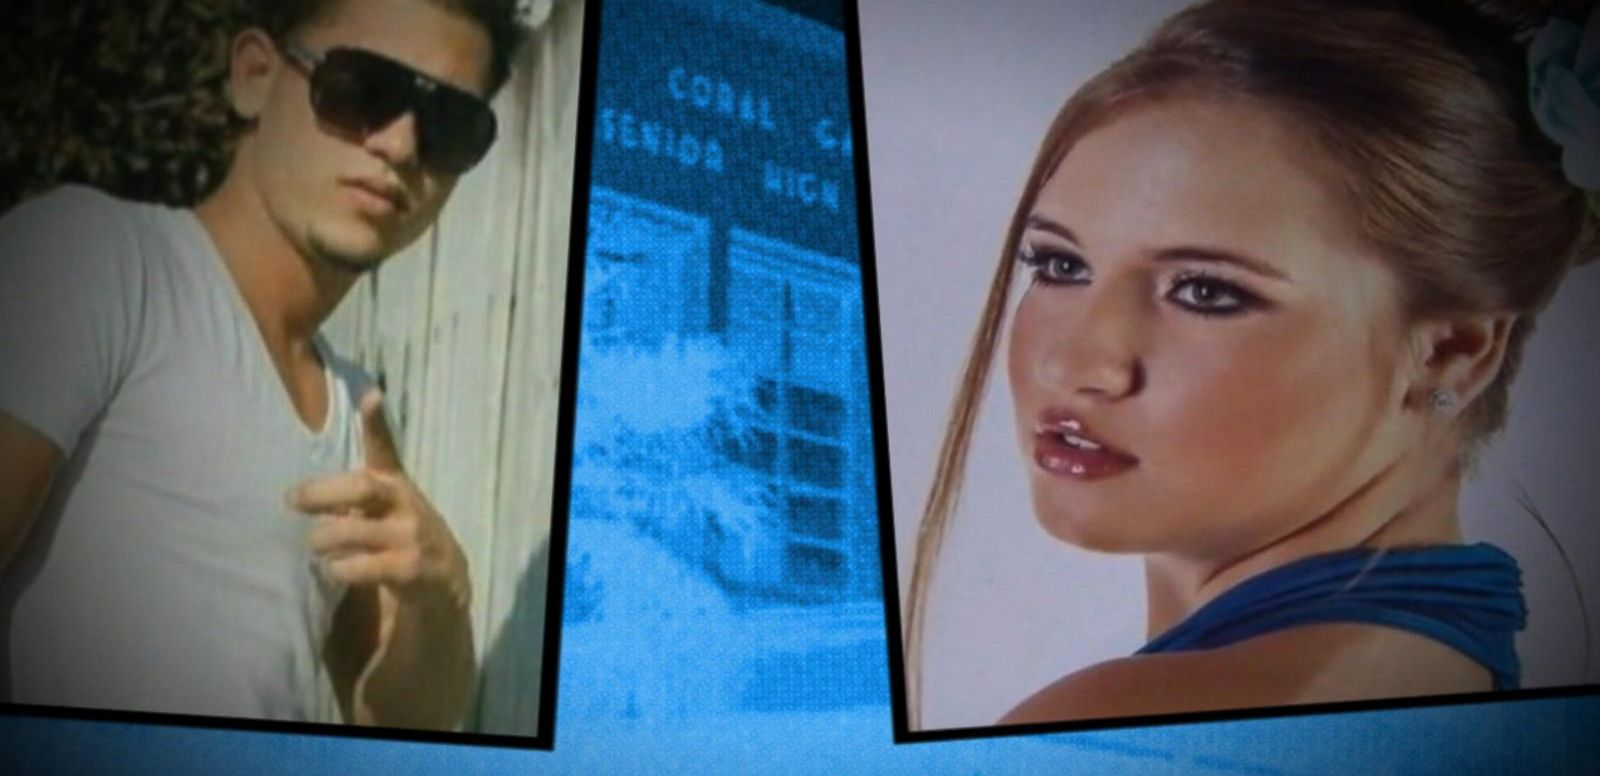 VIDEO: Florida Police Search for Missing Star-Crossed Lovers